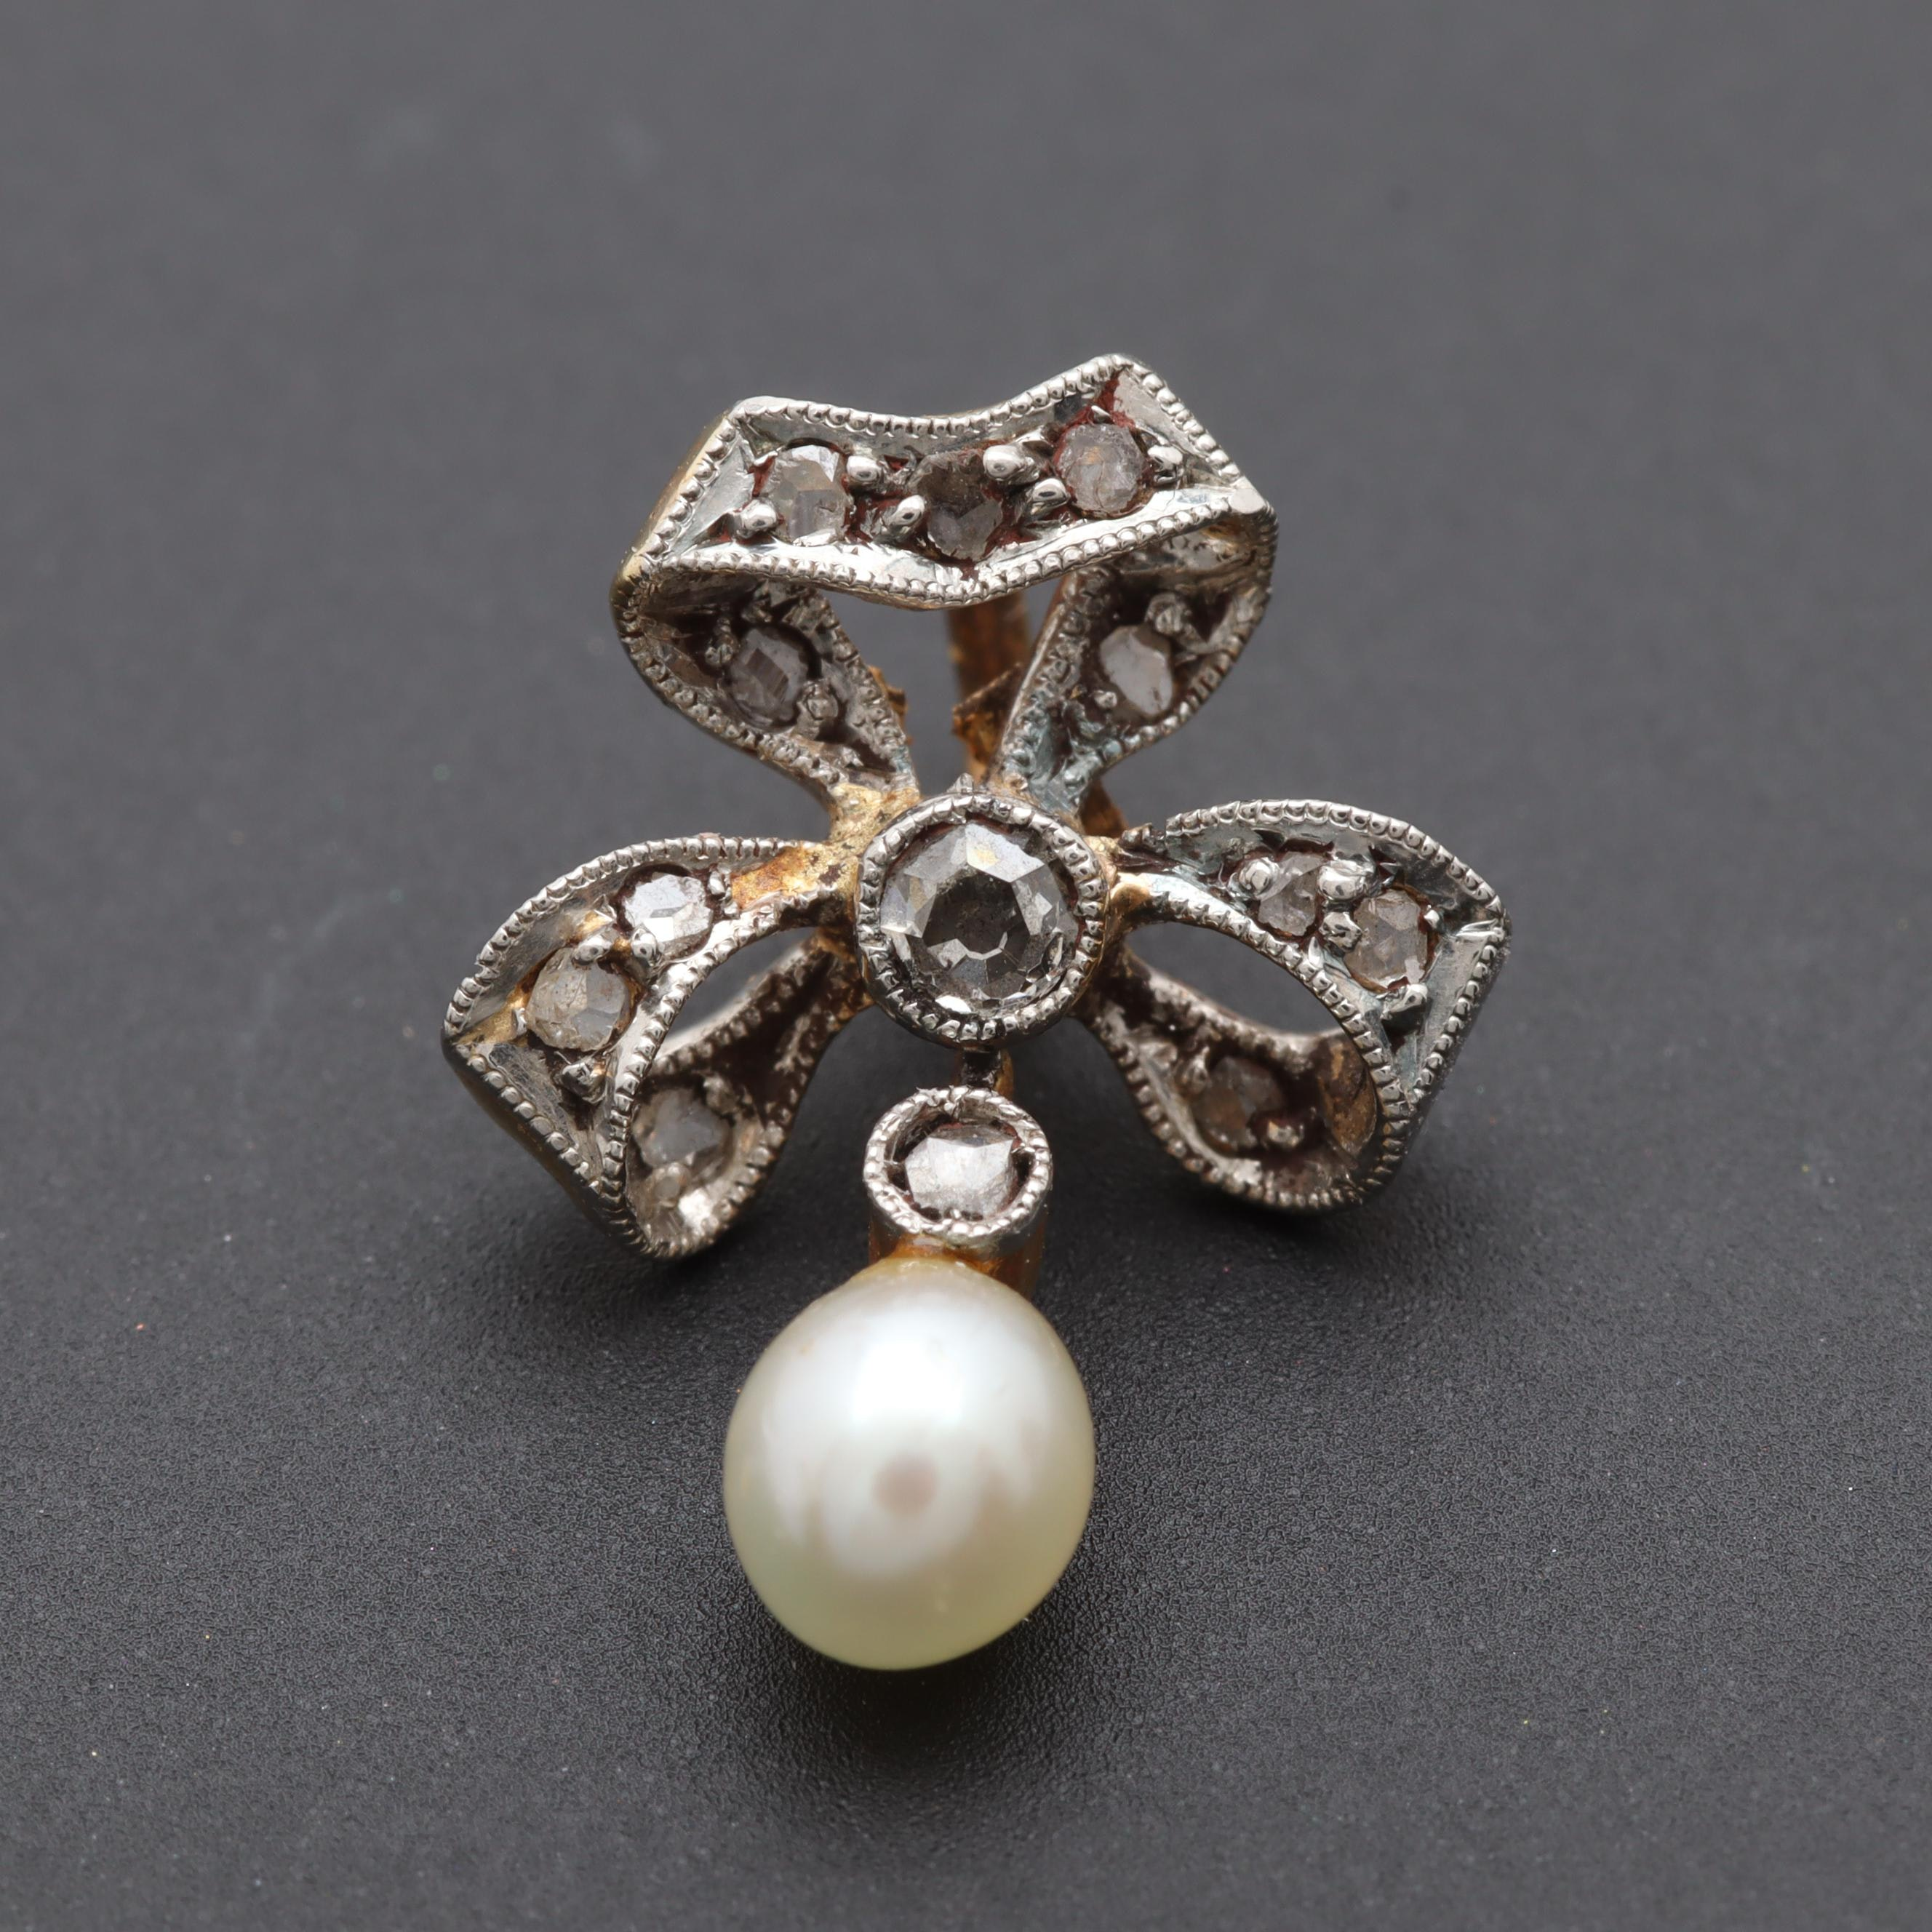 14K Yellow Gold and Platinum Diamond and Cultured Pearl Pendant